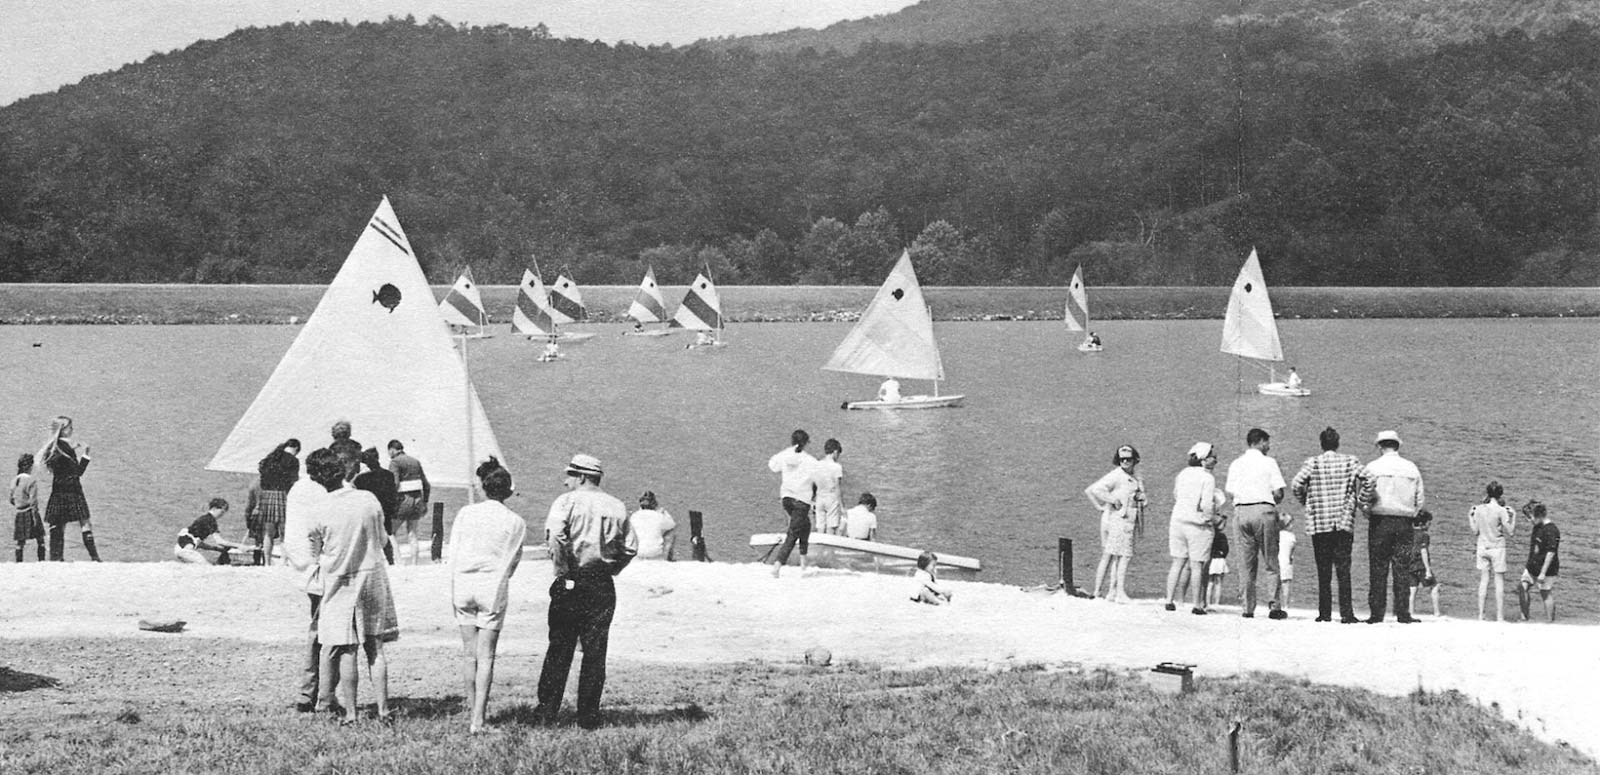 Vintage photo of the Grandfather Lake beach